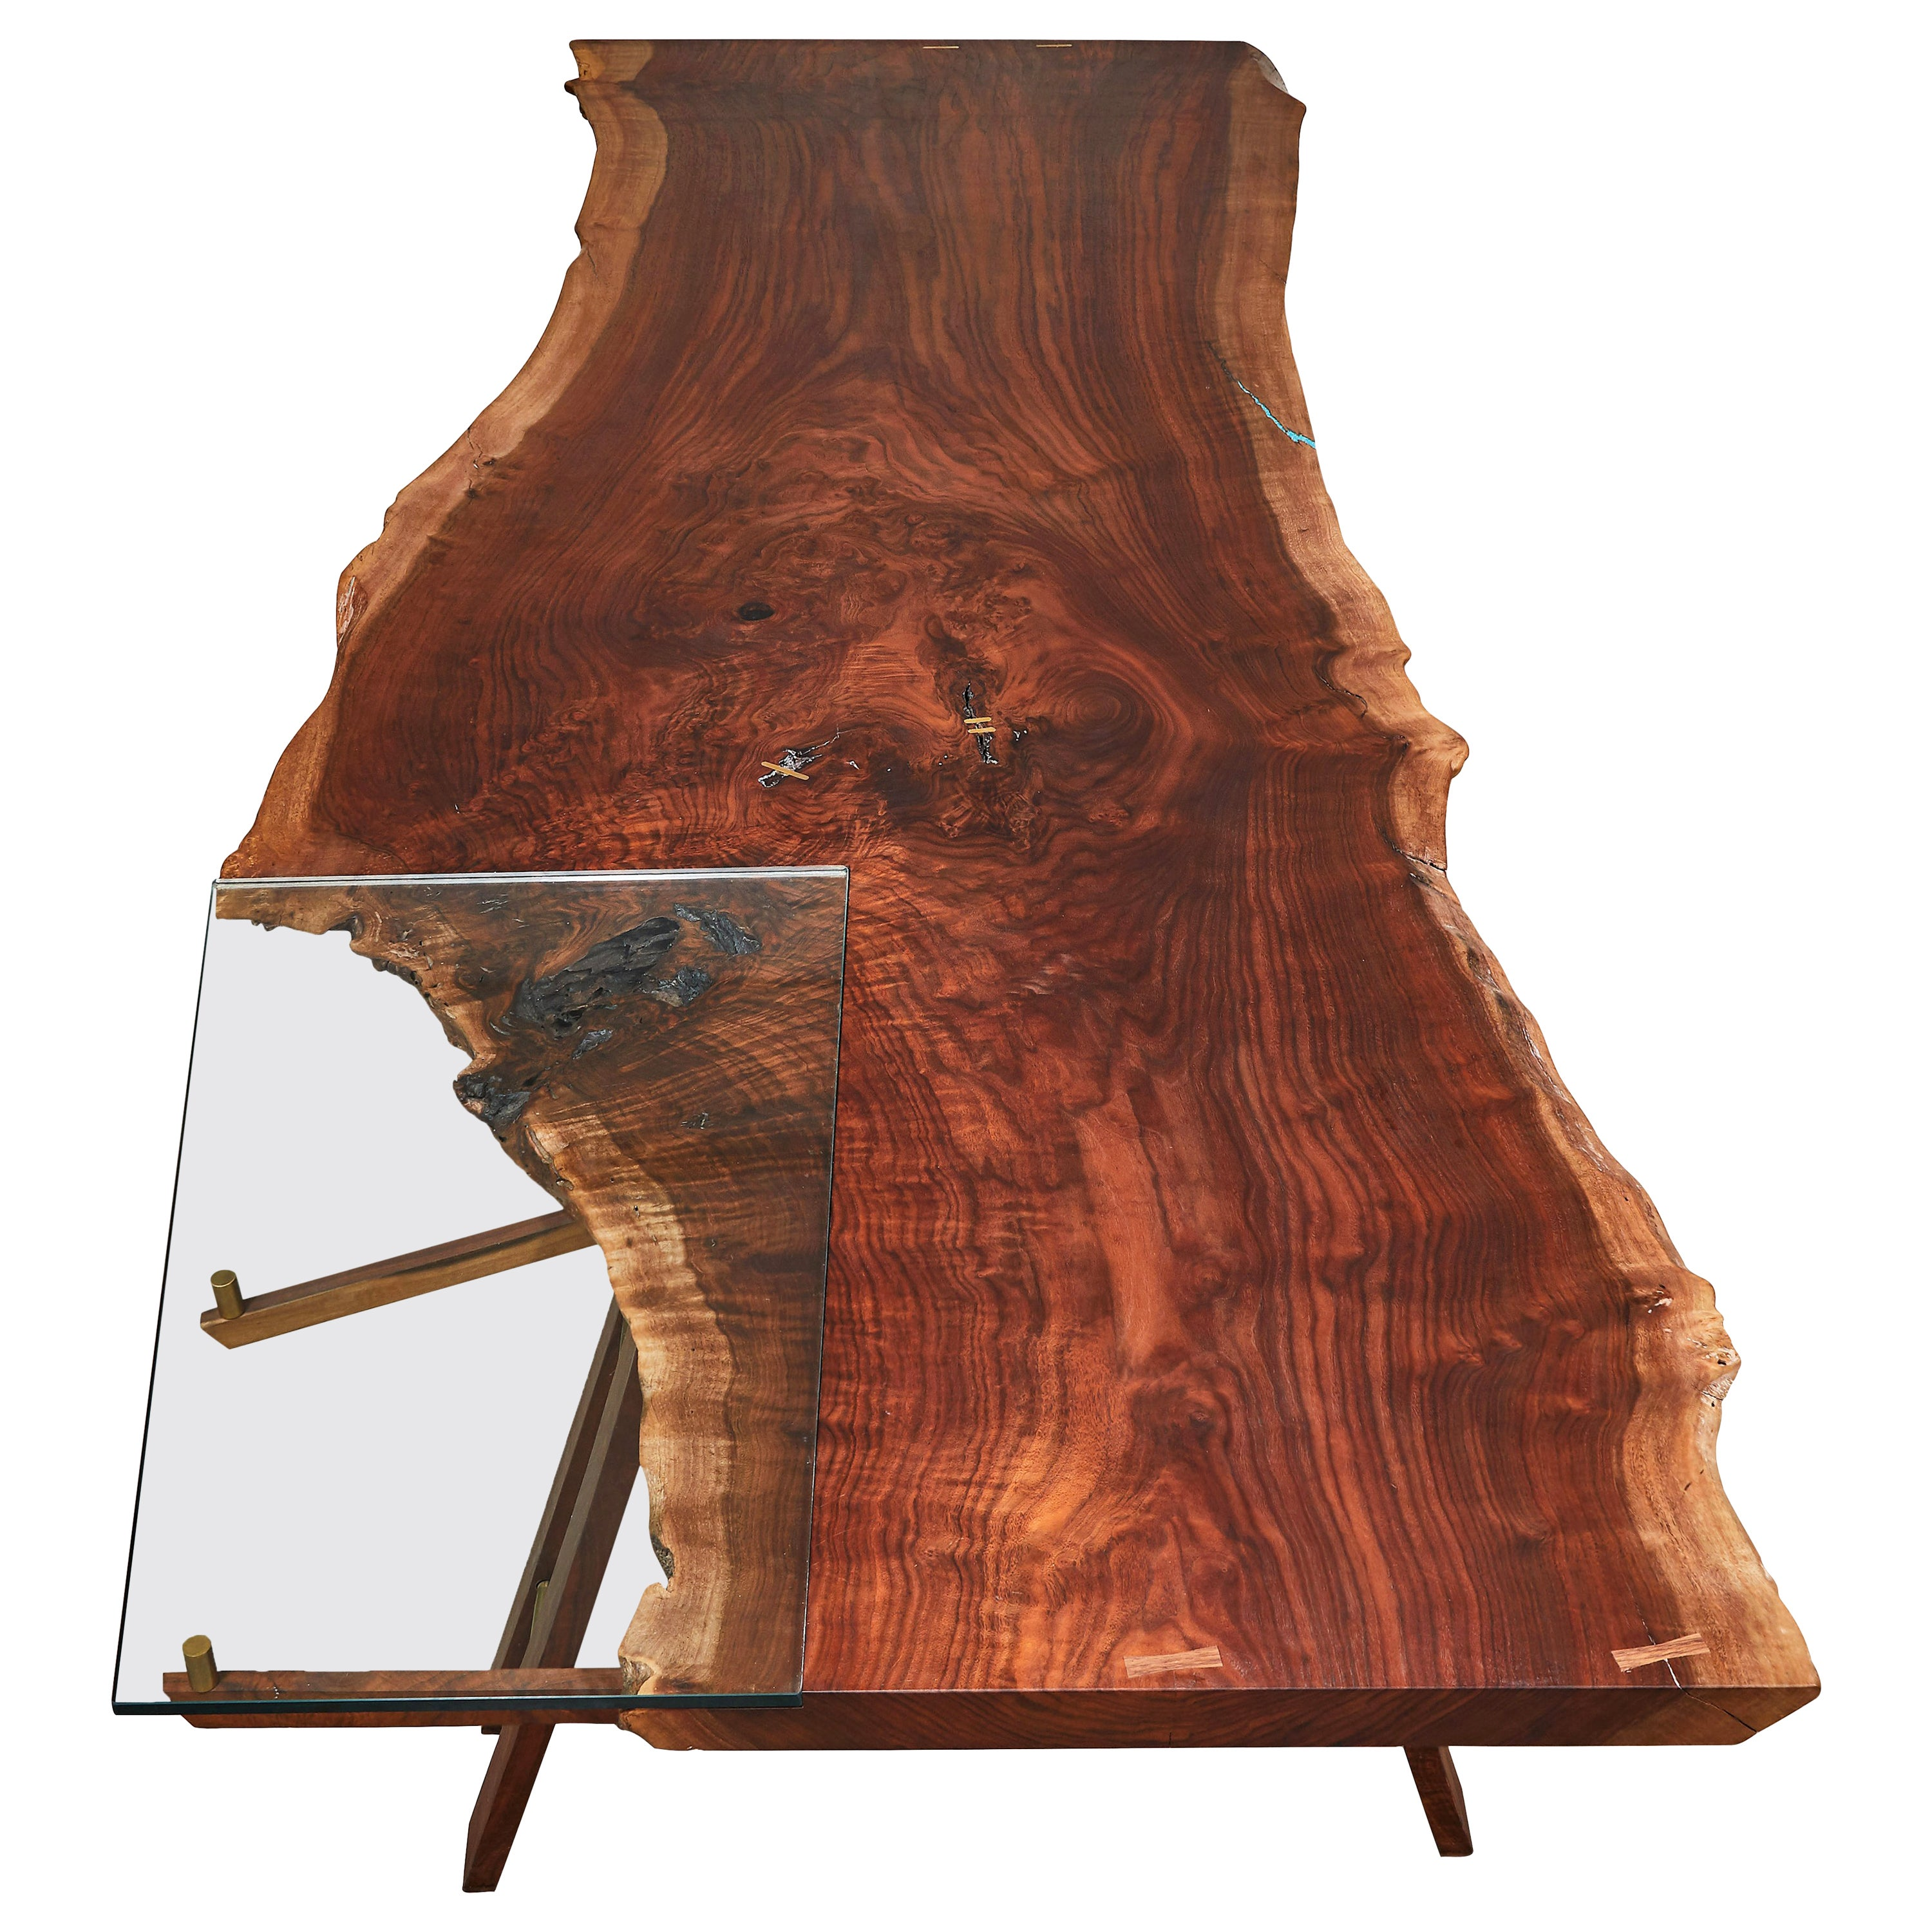 Live Edge Oiled Claro Walnut Slab with Glass Extension Table by Casey McCafferty